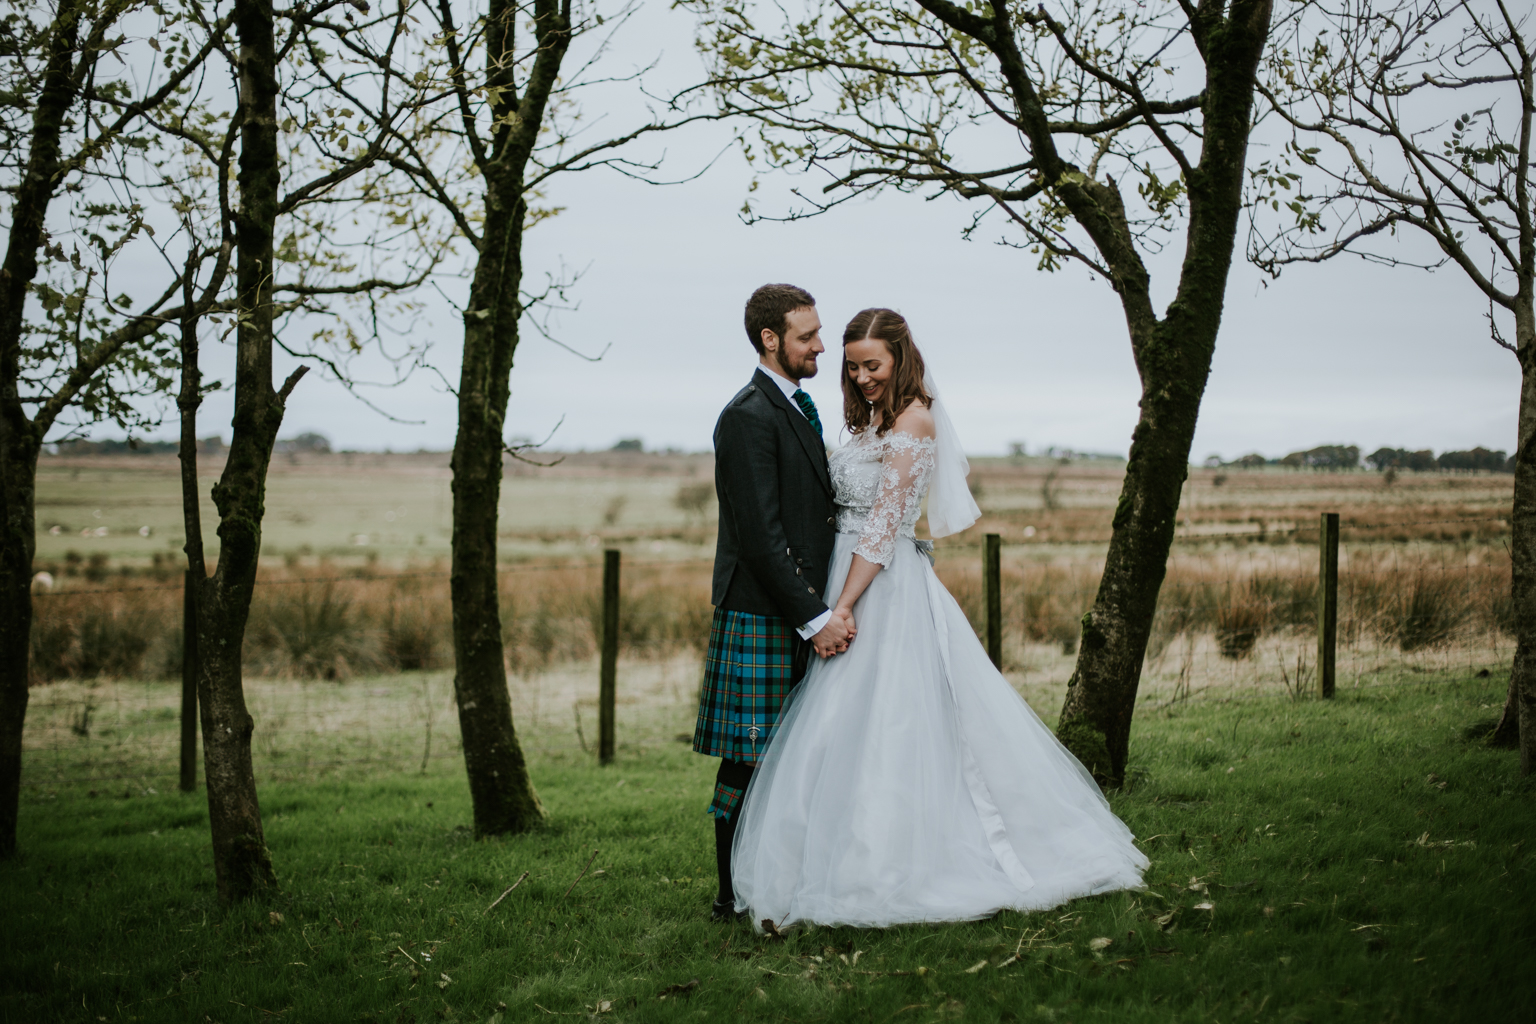 A romantic portrait photo session. Harelaw farm wedding, Ayrshire.